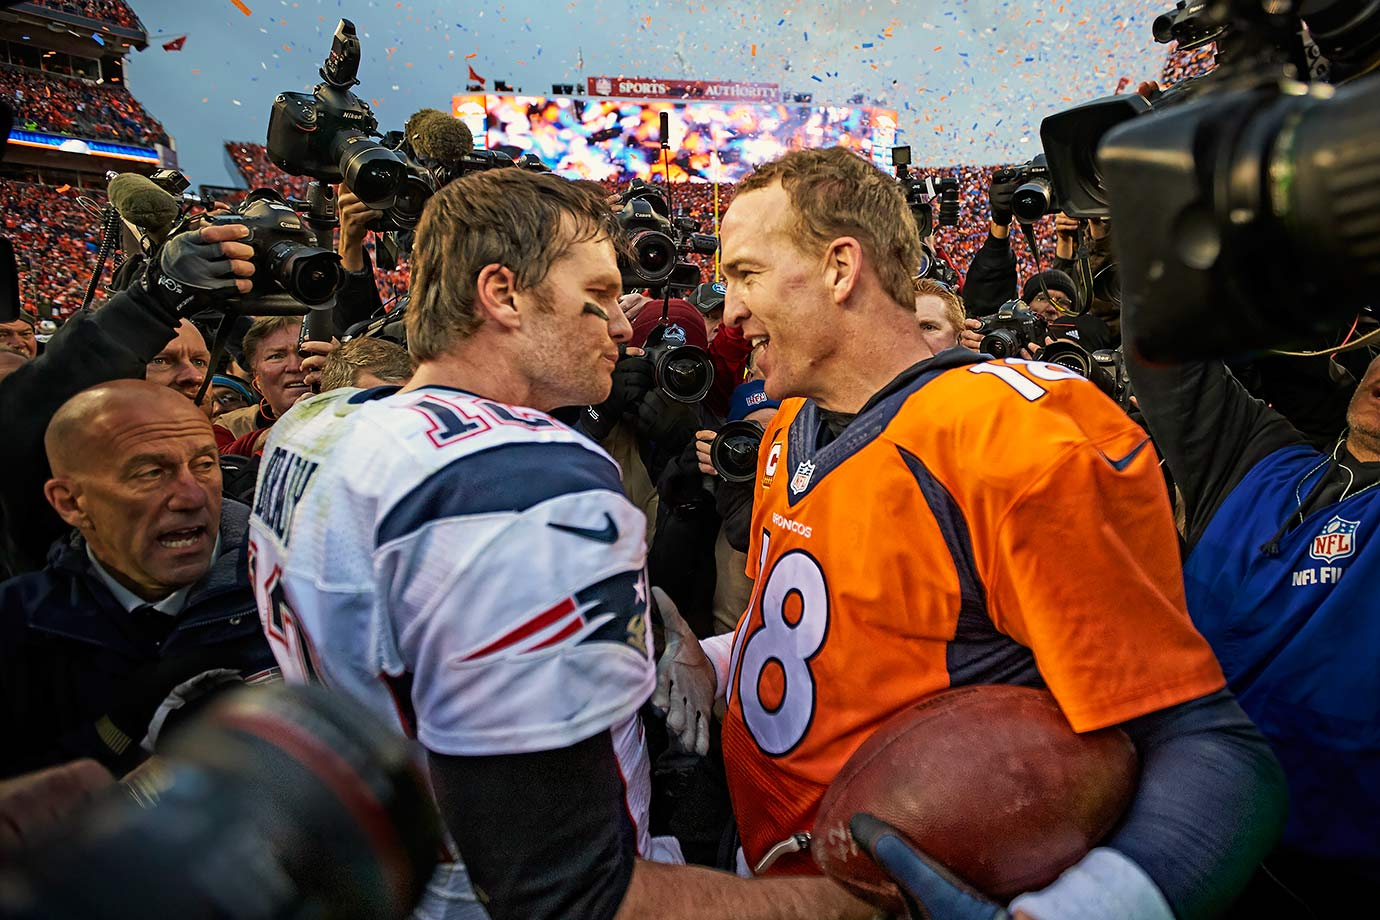 In the 17th matchup between Tom Brady and Peyton Manning, the Broncos met the Patriots in the AFC Championship. The Broncos led the entire game behind Manning's two early touchdown passes to tight end Owen Daniels, but Brady and the Patriots made a comeback in the waning moments of the game. Under two minutes to go, down eight and facing a fourth and 10, Brady flung a 40-yard bomb to tight end Rob Gronkowski. A few plays later, Gronkowski caught a touchdown pass with 12 seconds to go. The two-point conversion was intercepted by Roby, which clinched the game for the Broncos.